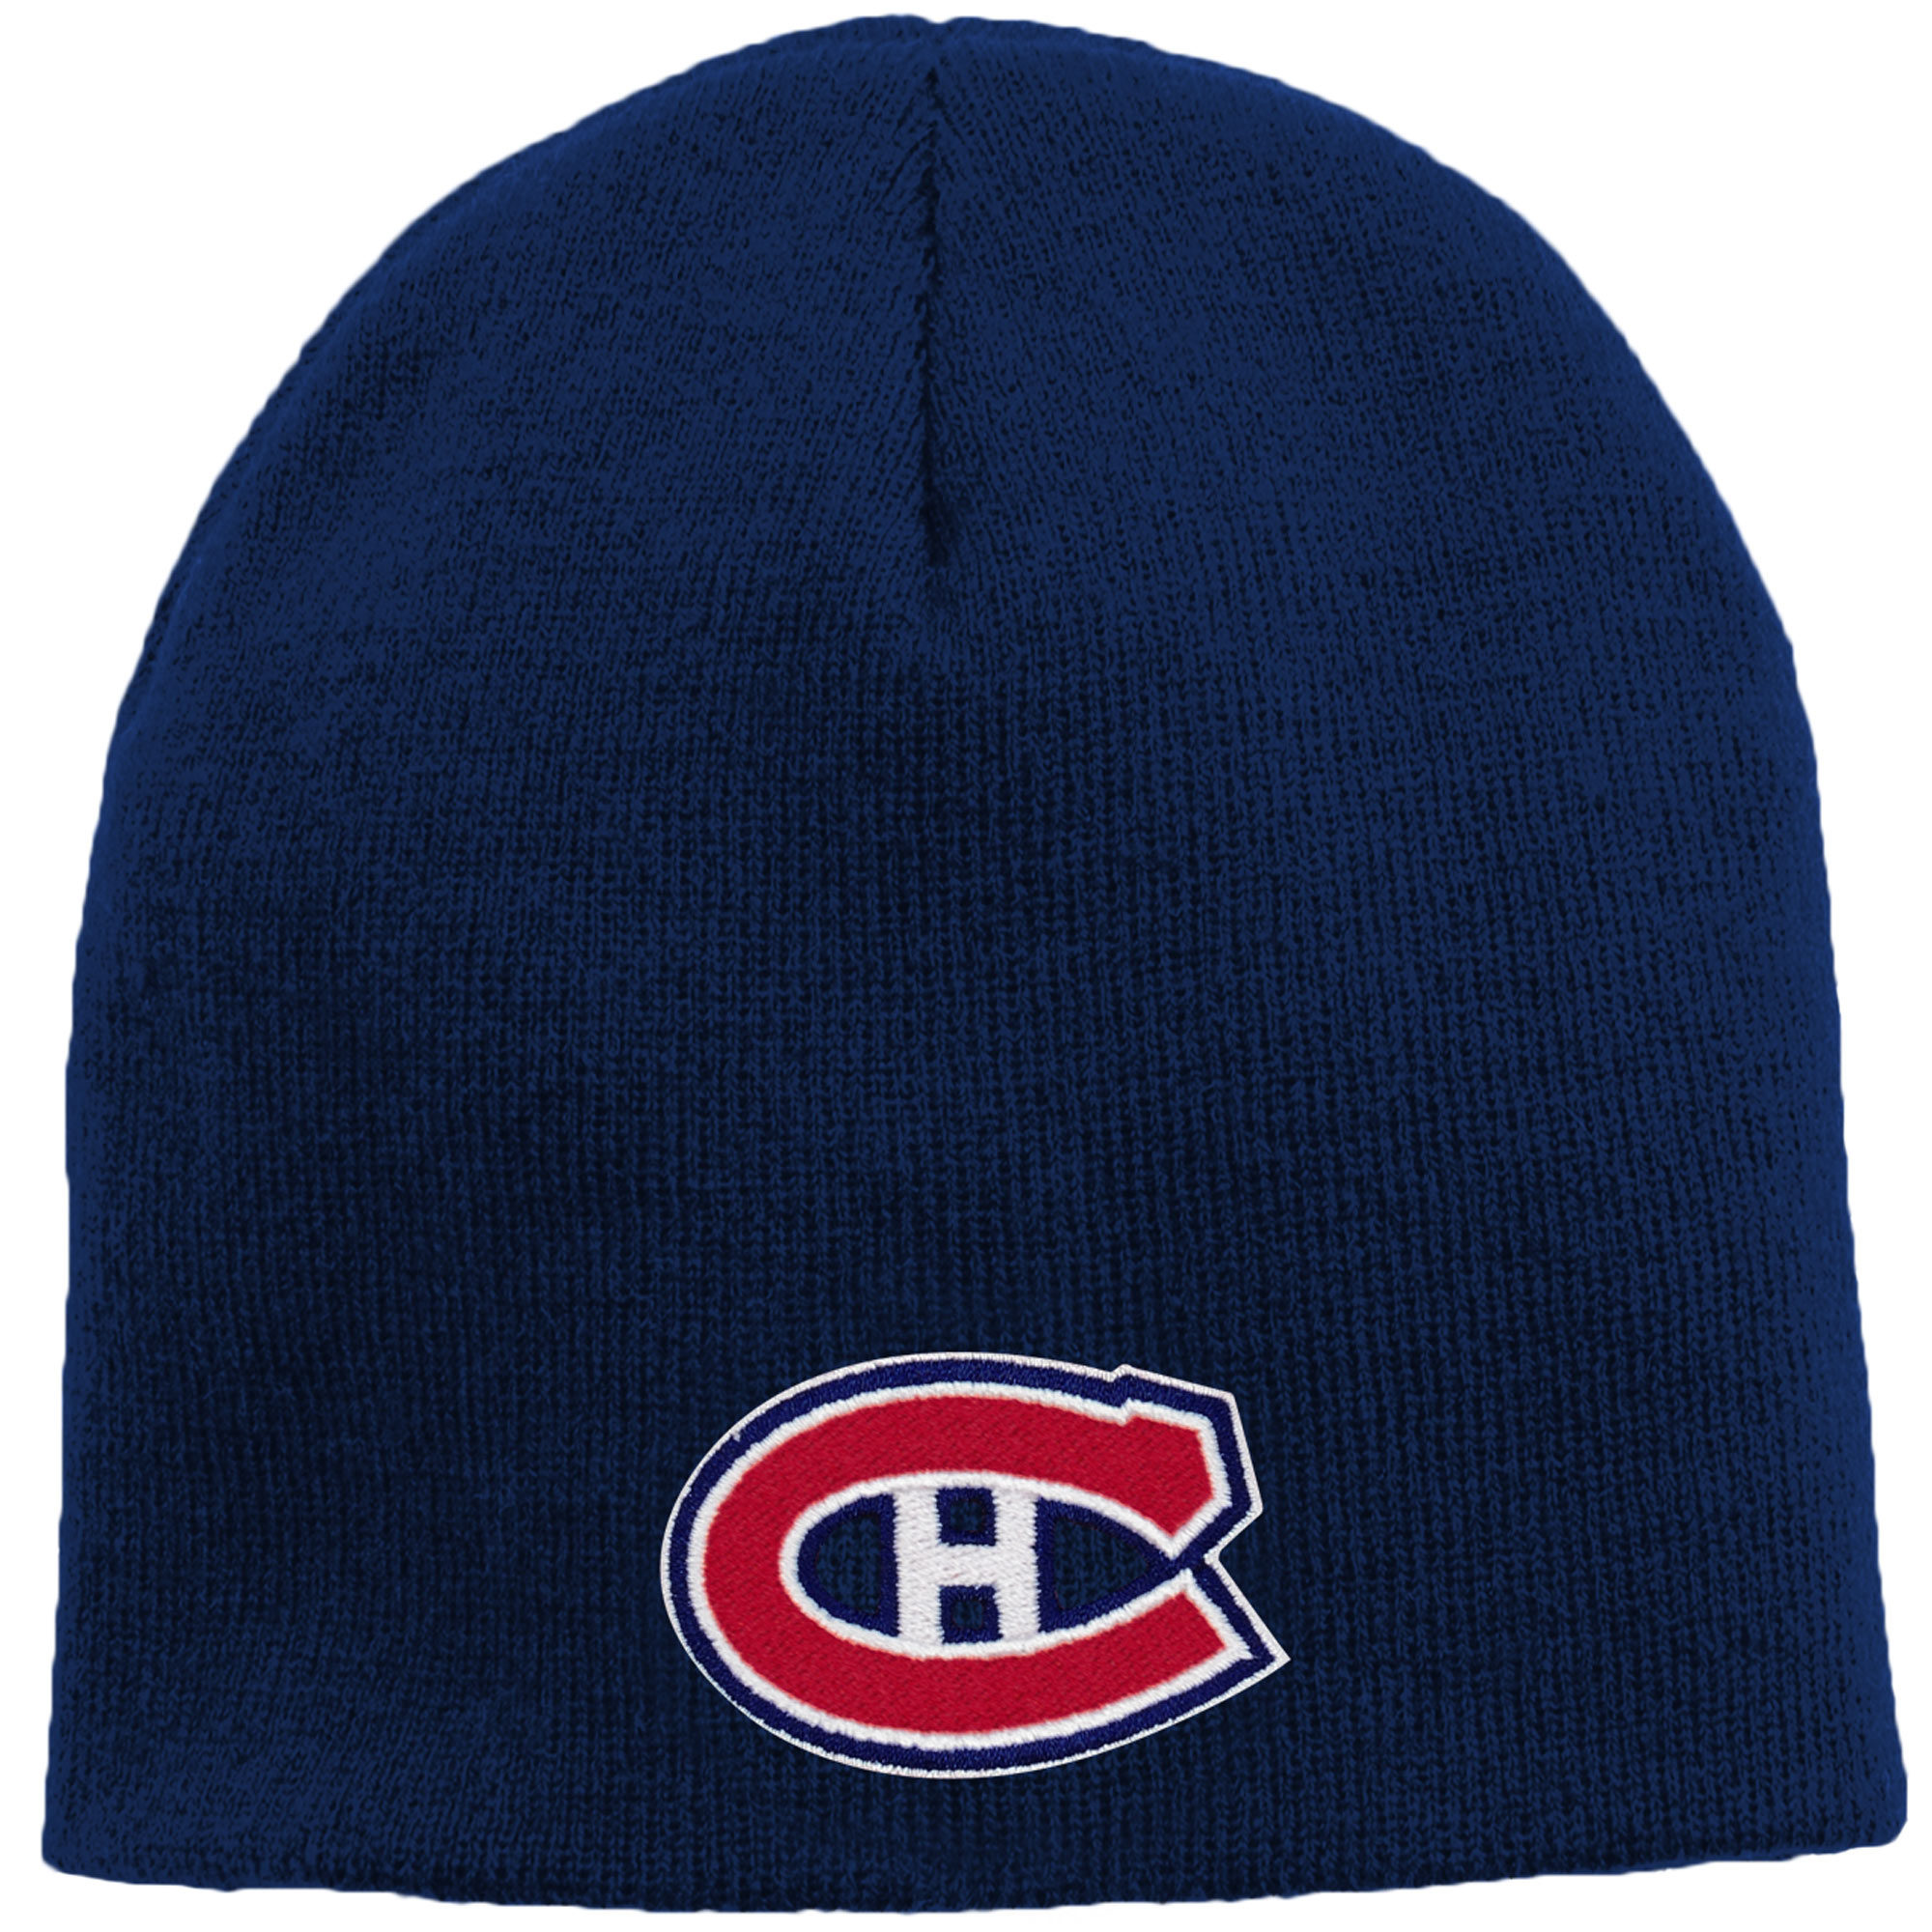 Montreal Canadiens Toddler Knit Beanie - Blue - OSFA